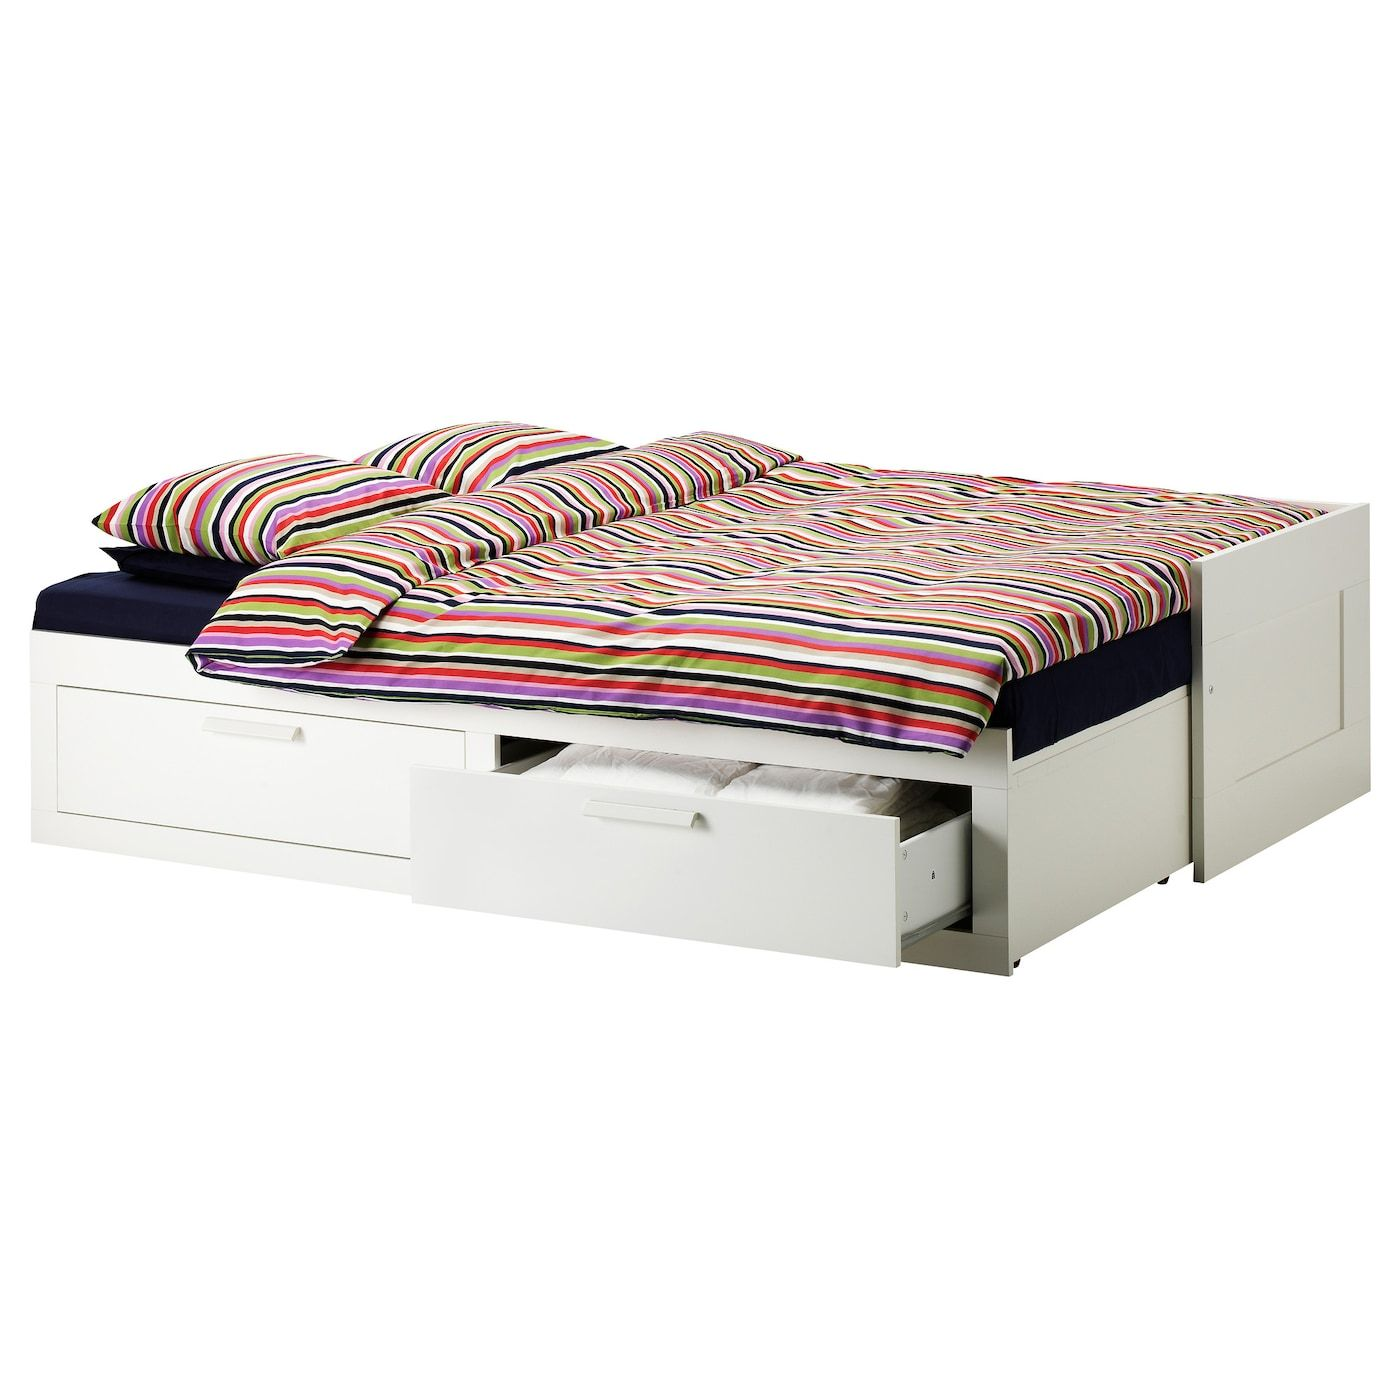 Brimnes Daybed Frame With 2 Drawers White Twin Ikea In 2020 Daybed With Storage Full Size Daybed Ikea Day Bed Frame